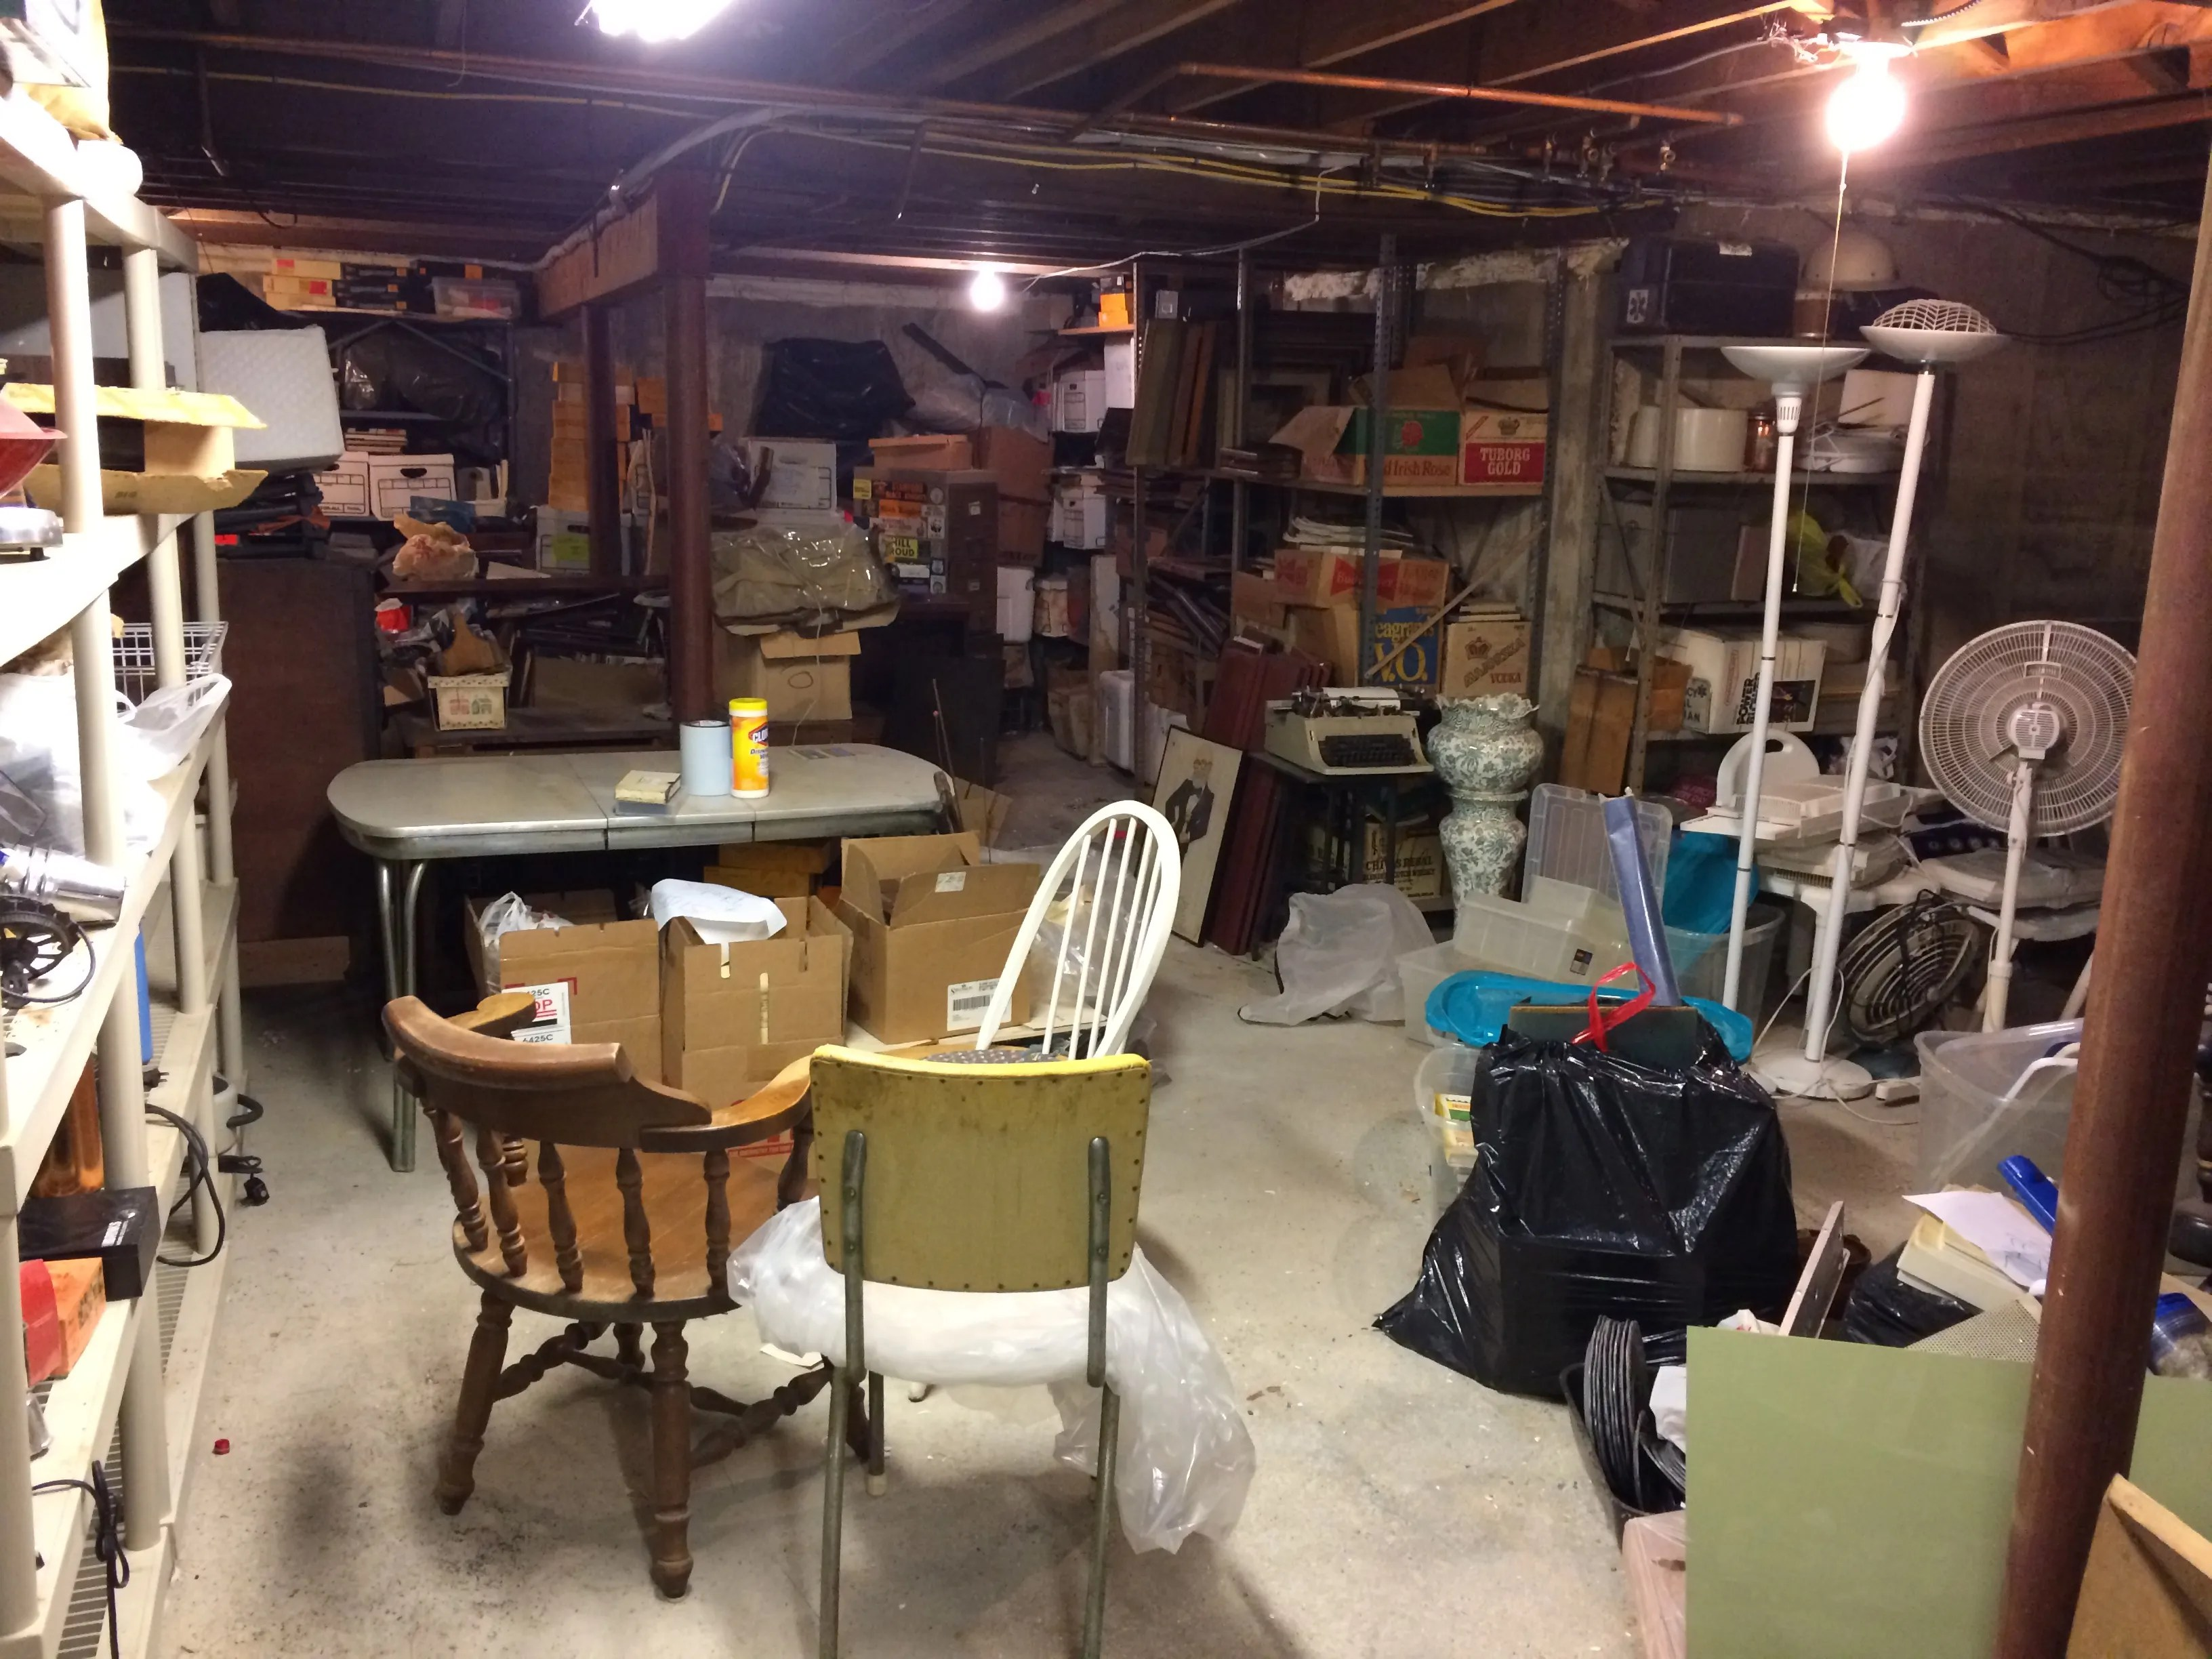 40 years of stuff packed into a basement